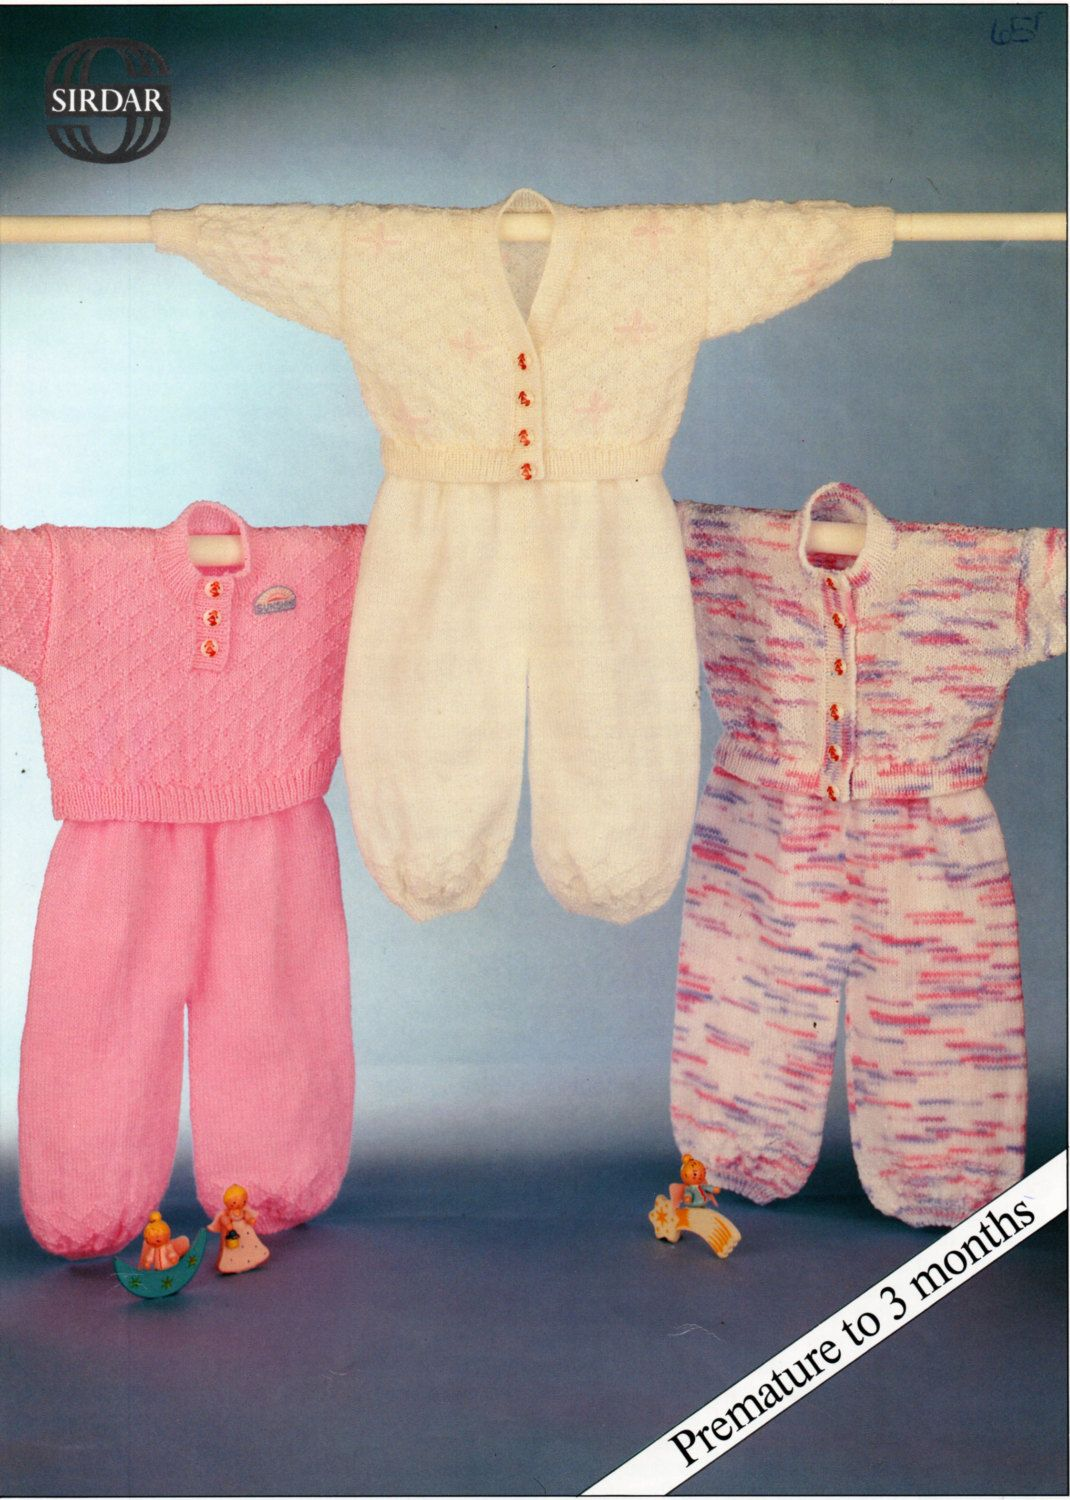 Baby 4ply trousers sweater cardigan knitting pattern pdf premature baby 4ply trousers sweater cardigan knitting pattern pdf premature baby set rompers romper suit 12 18 4 ply instant download bankloansurffo Image collections